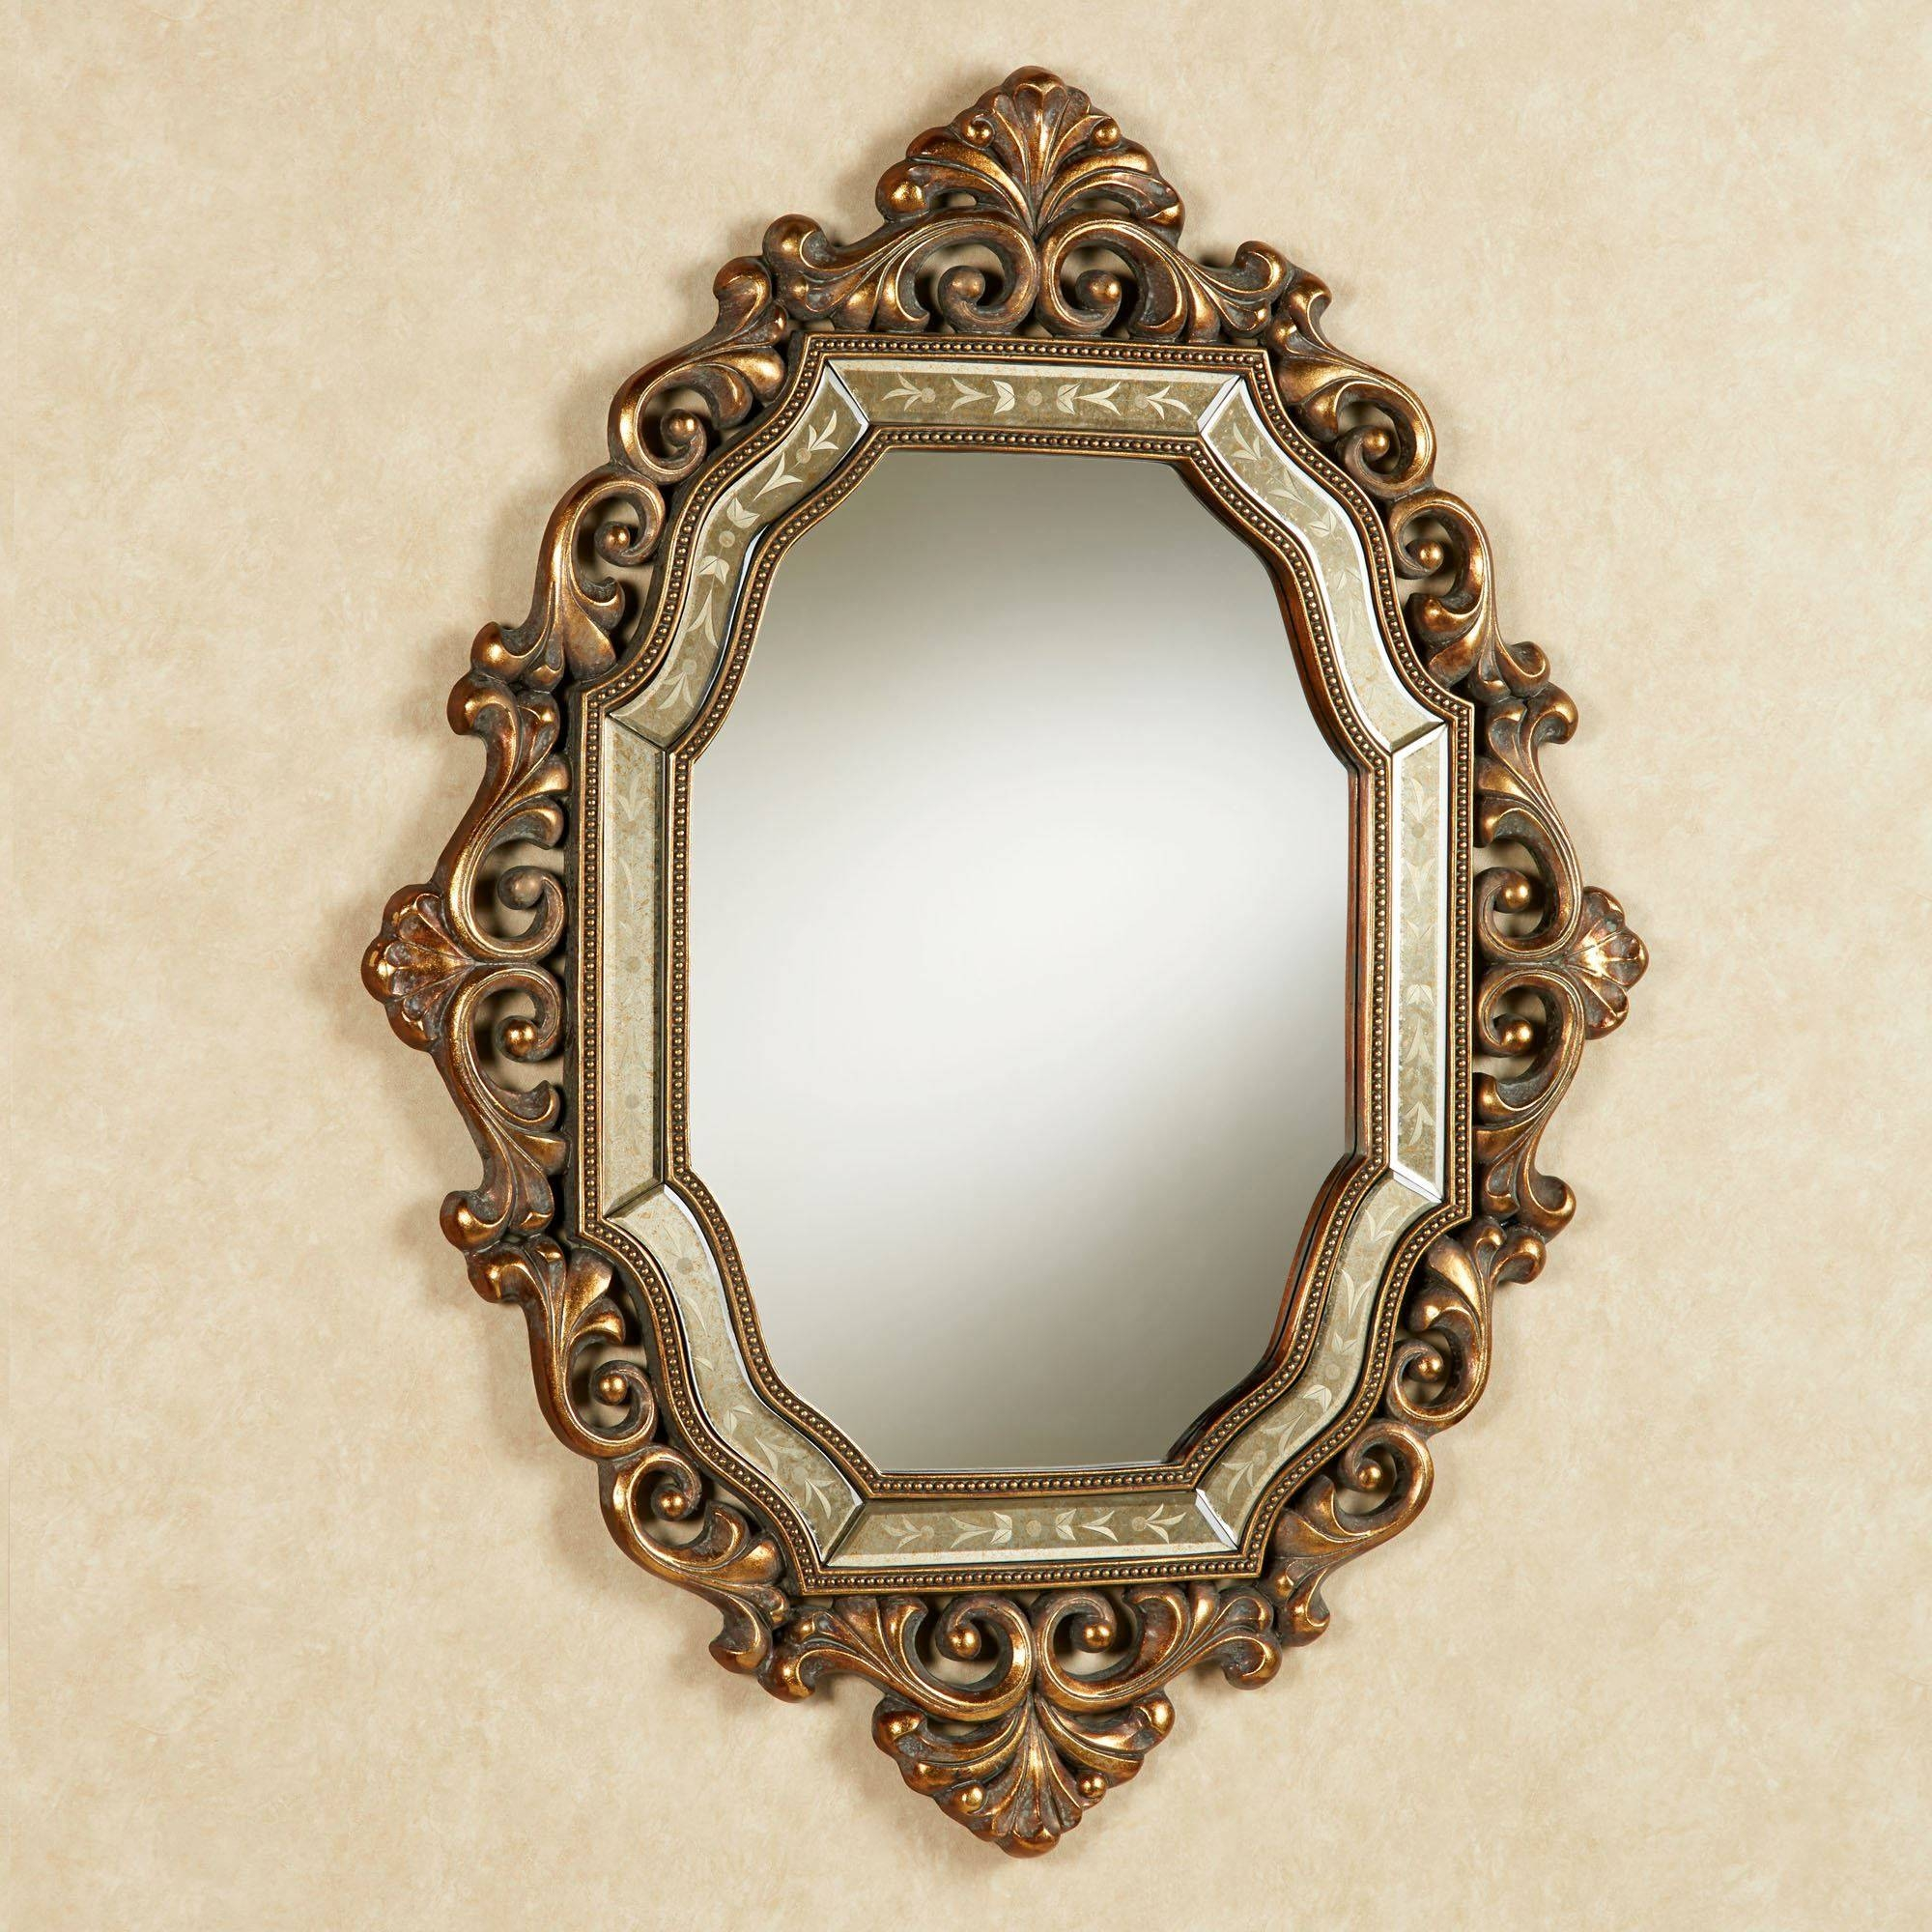 Verena Old World Wall Mirror intended for Gold Heart Mirrors (Image 14 of 15)